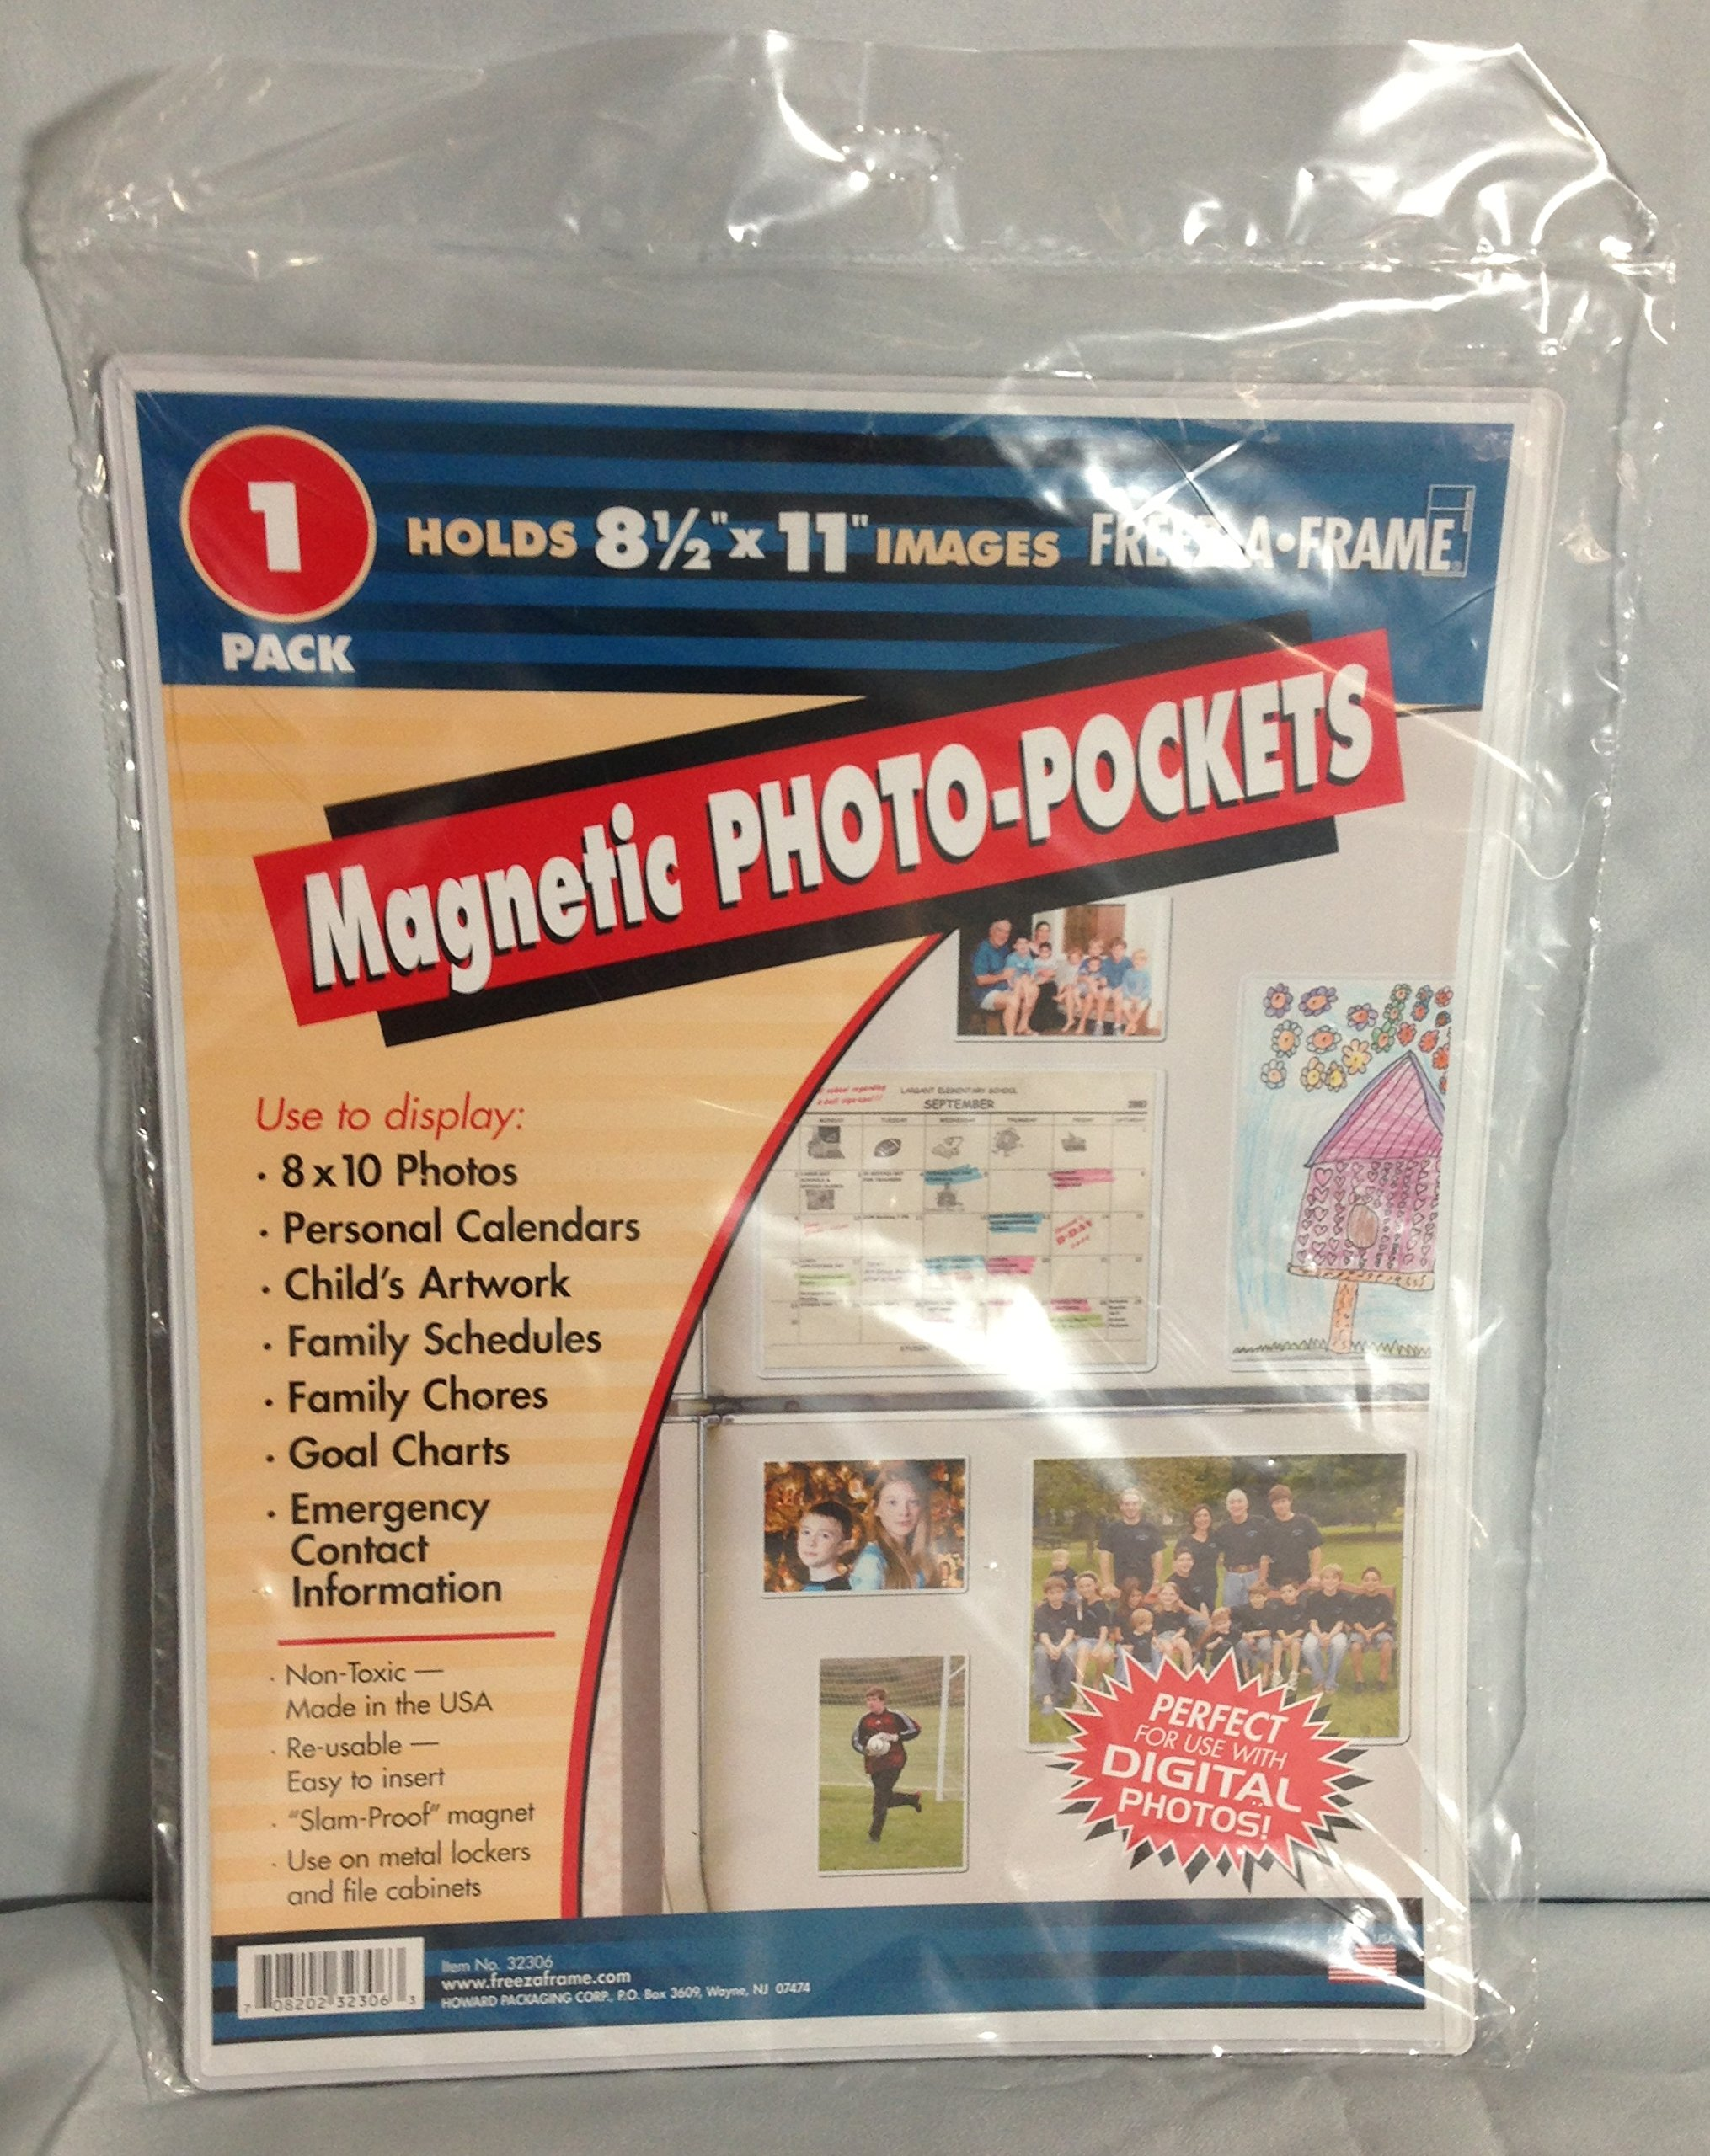 OKSLO Freez-A-Frame 61313 Magnetic 8-1/2 x 11 Photo Frame For Refrigerator 5 x 1-pack